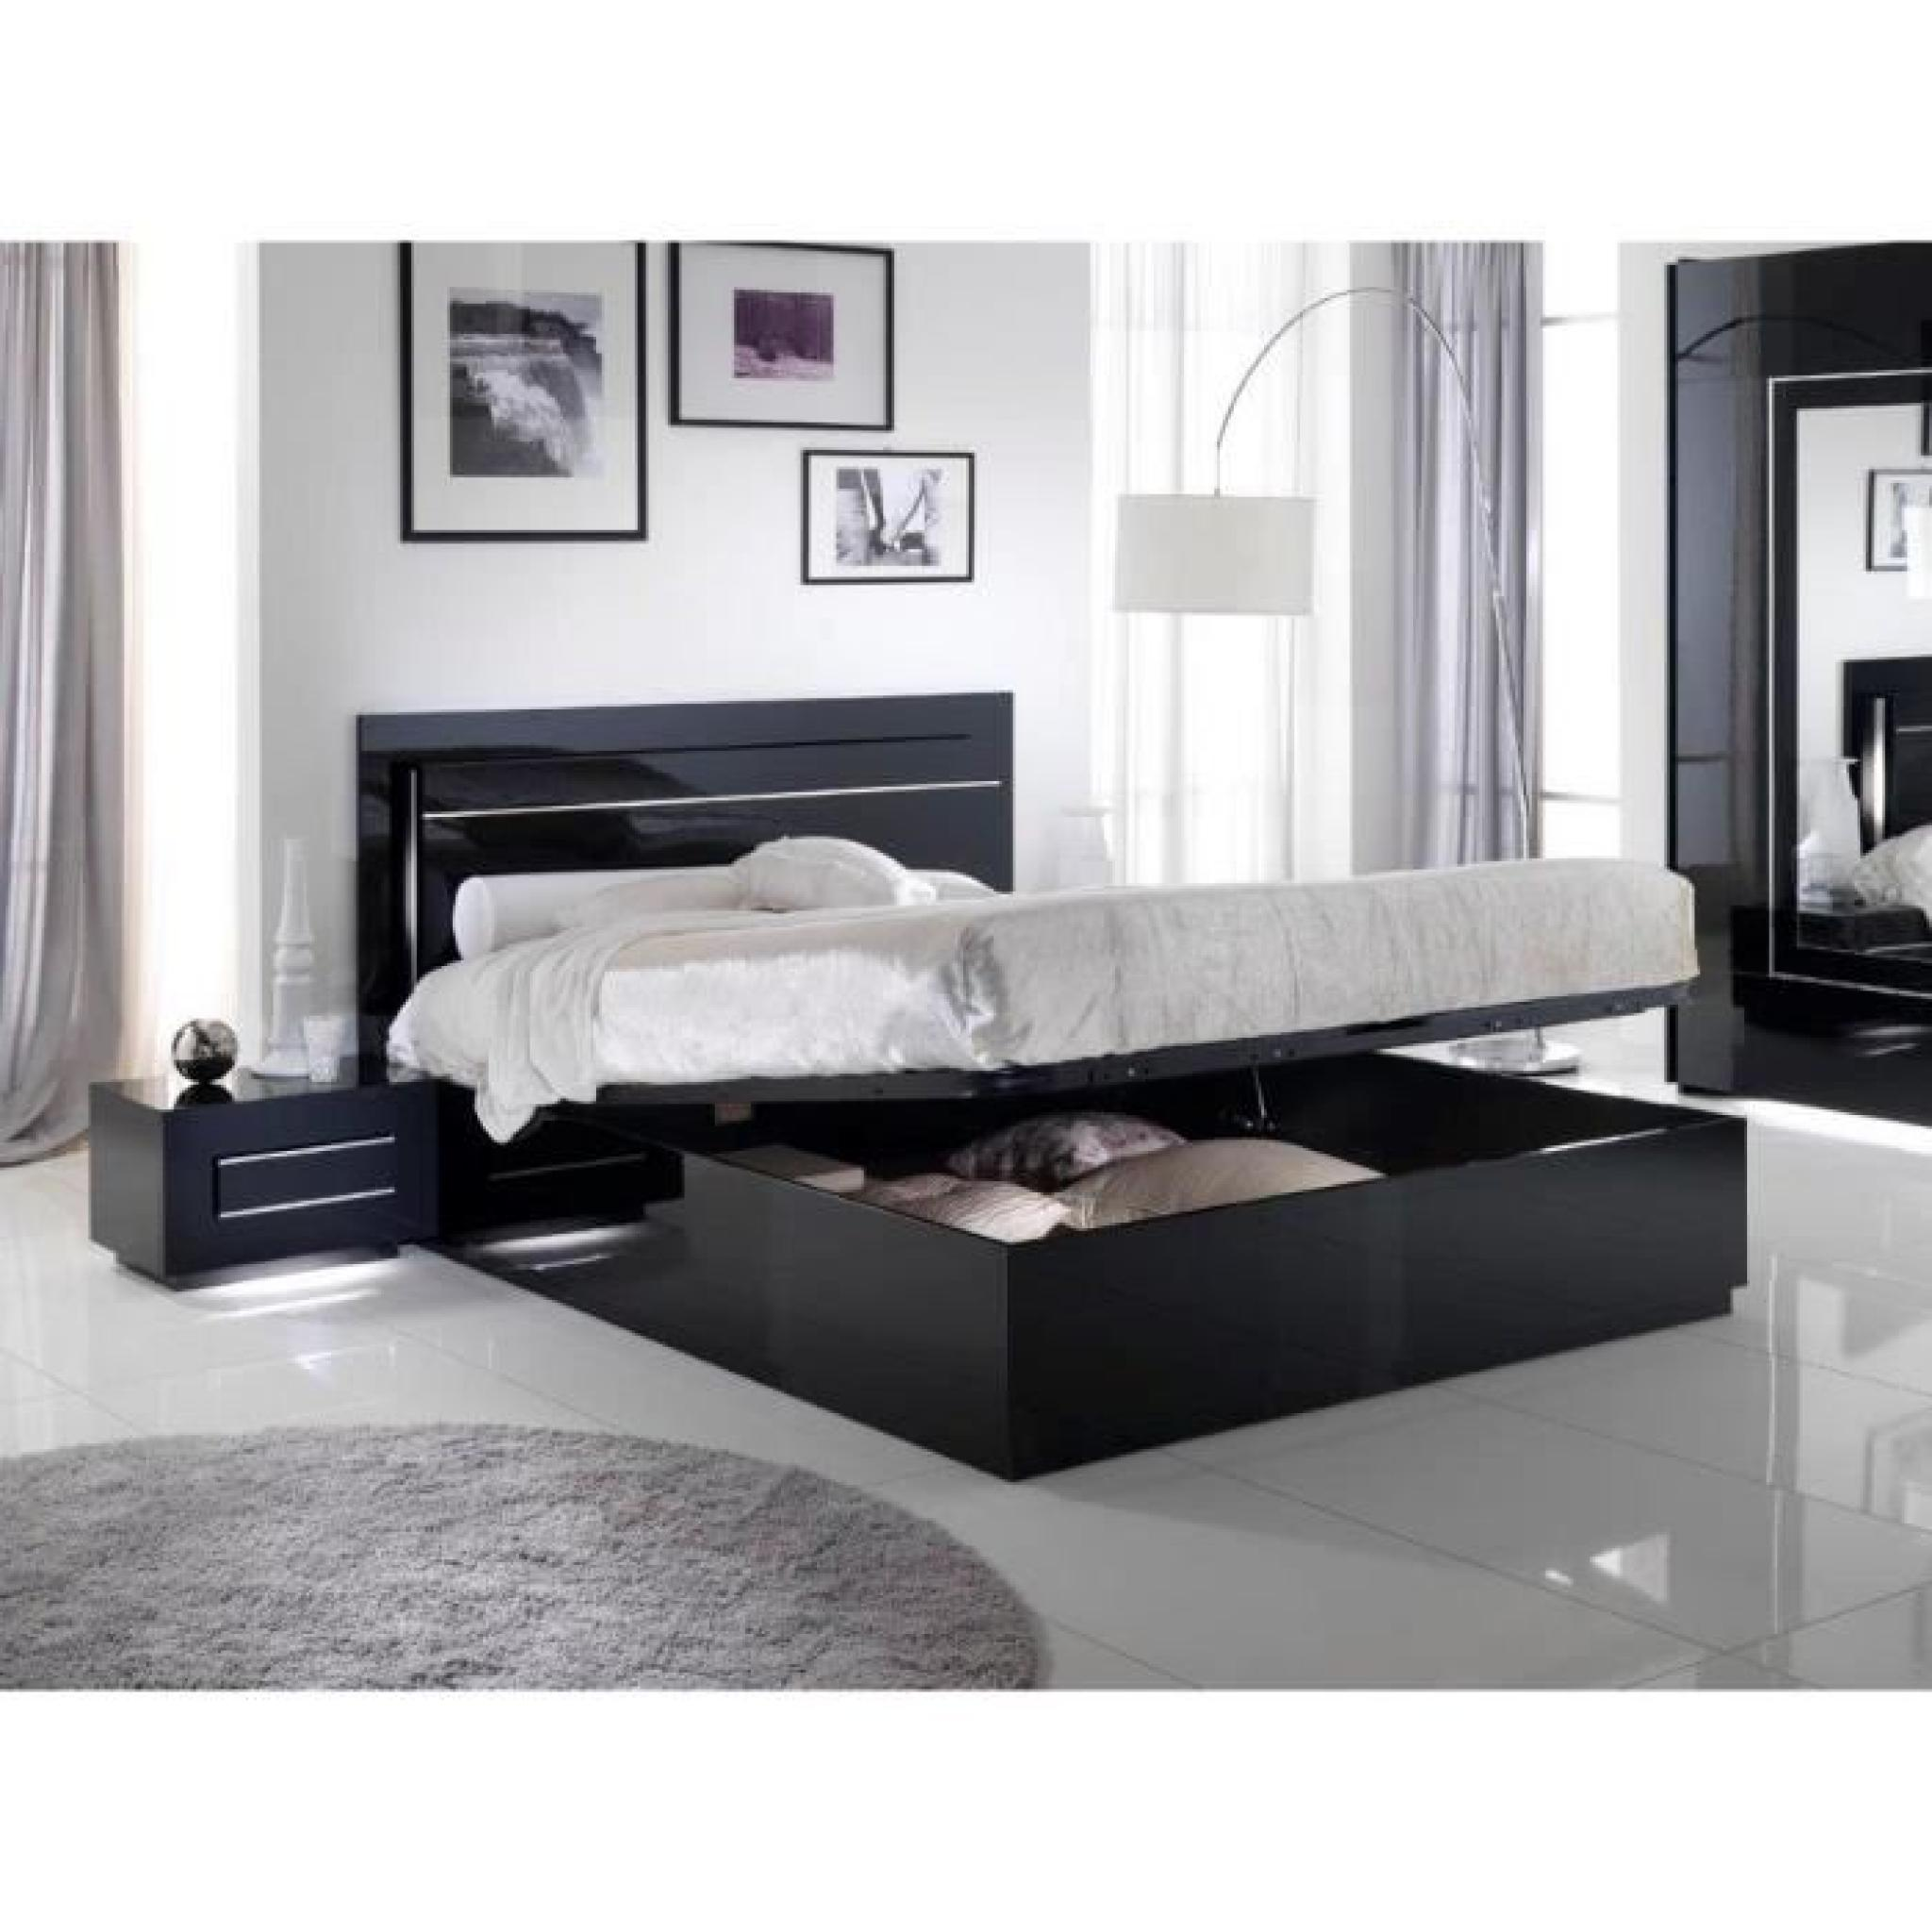 beautiful model lit de chambre contemporary home ideas 2018. Black Bedroom Furniture Sets. Home Design Ideas